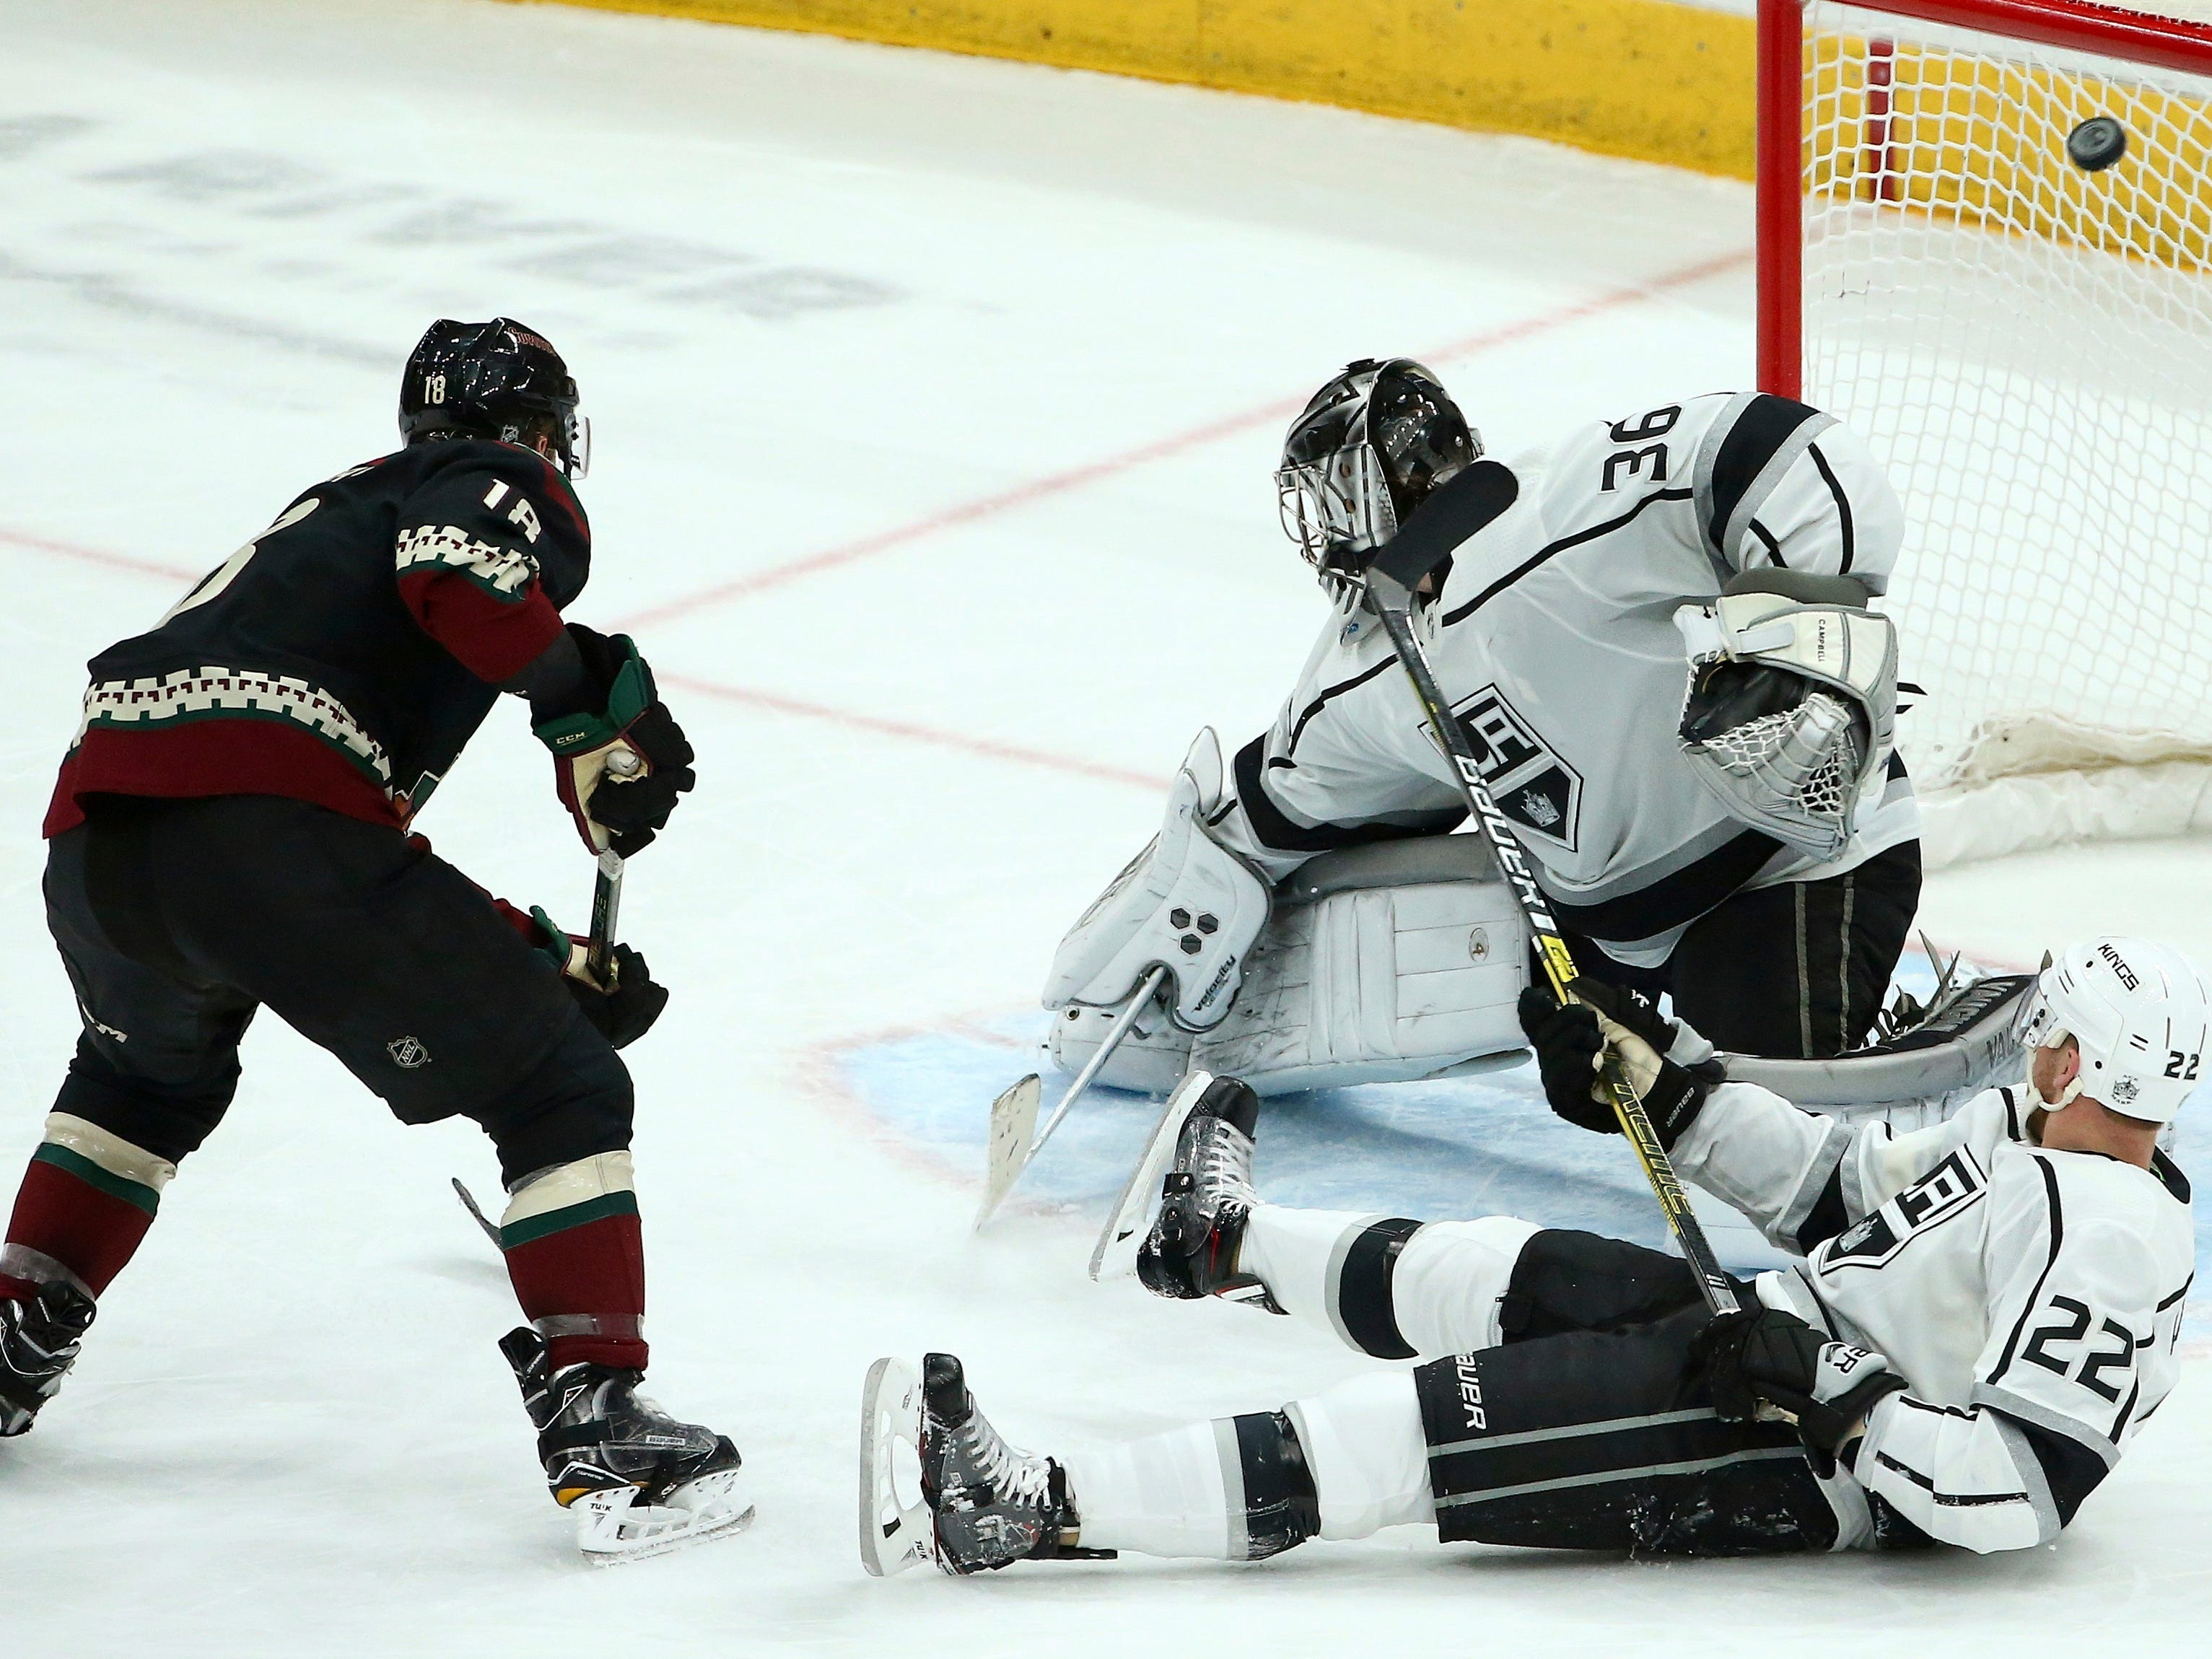 Arizona Coyotes center Christian Dvorak, left, scores a goal against Los Angeles Kings goaltender Jack Campbell (36) as Kings center Trevor Lewis (22) slides along on the ice during the third period of an NHL hockey game Saturday, March 9, 2019, in Glendale, Ariz. The Coyotes defeated the Kings 4-2.